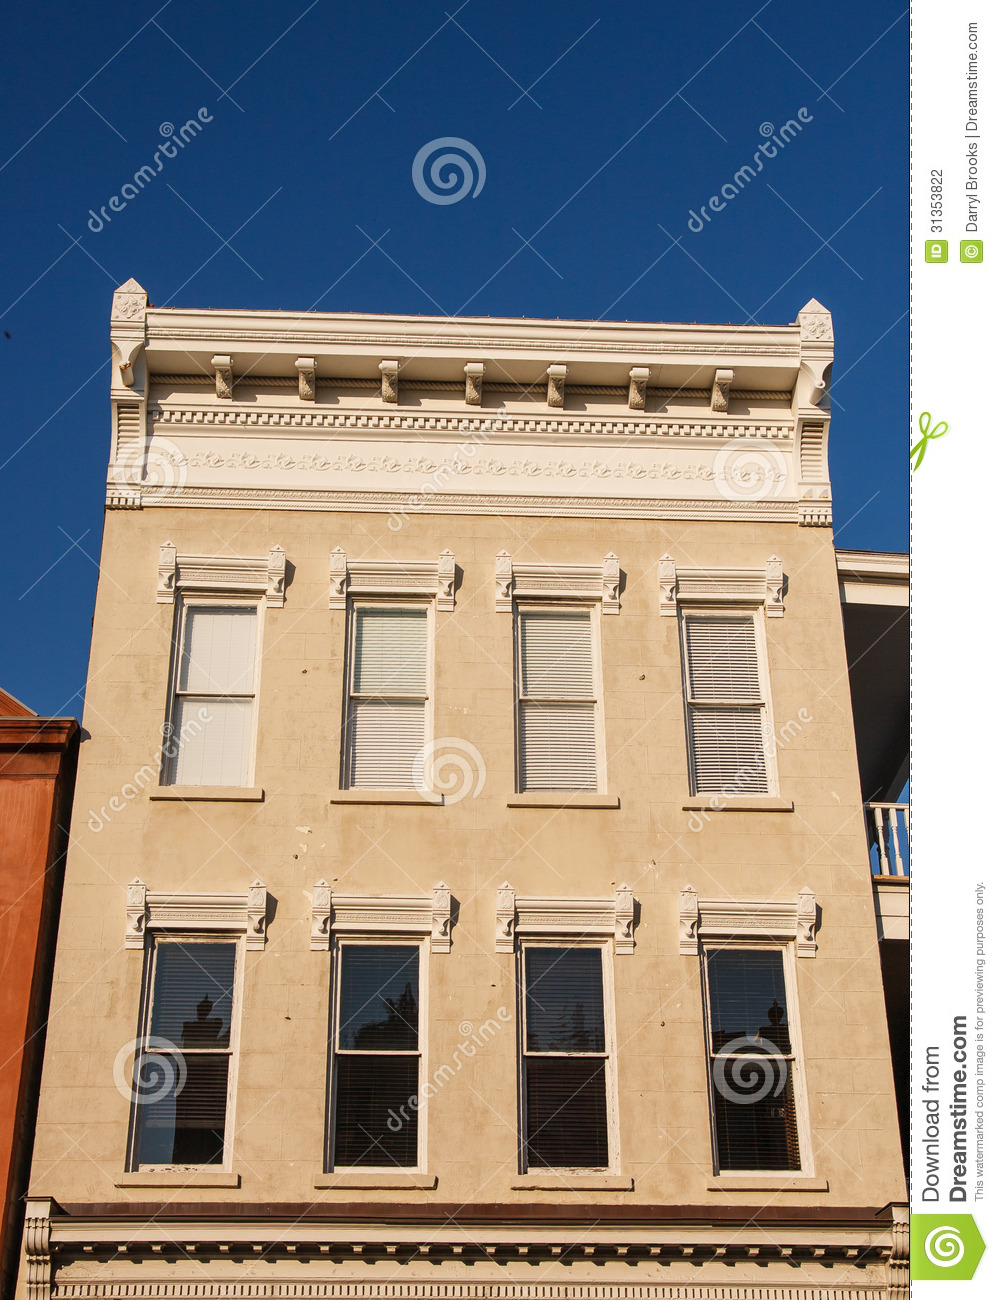 Plaster Building Brown Stone Building With Window Trim Stock Photo Image Of